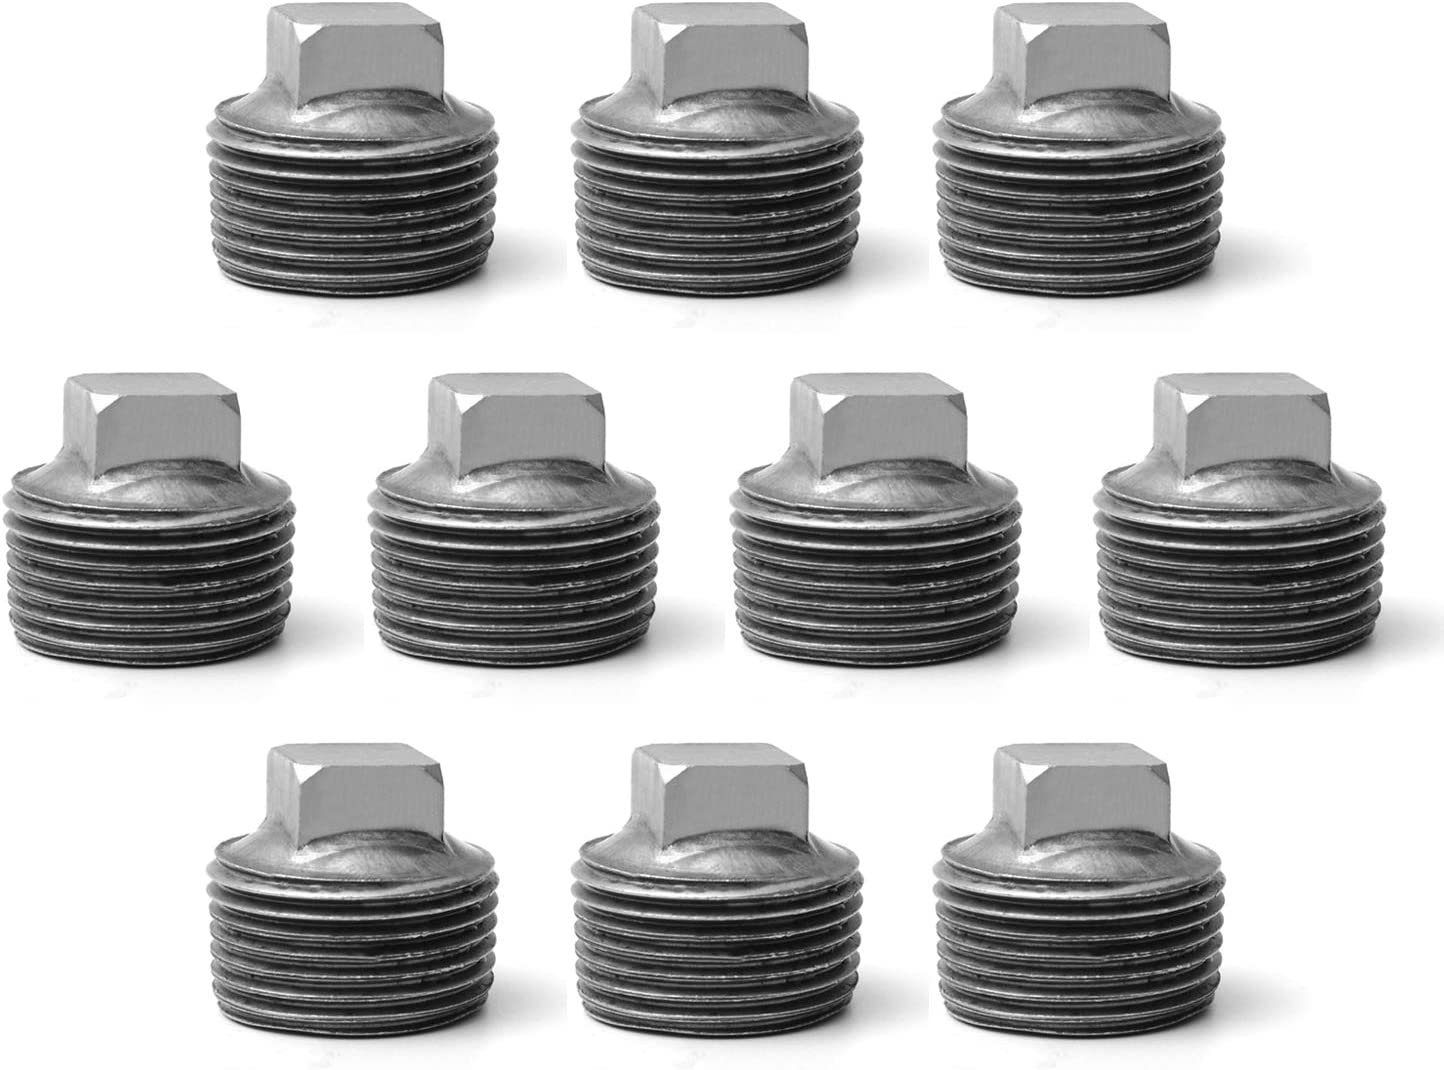 """3/4"""" Pipe Fitting Male Cap, Home TZH 10 Pack Malleable Iron Cast Black Pipe Male Square Caps for Steam-punk Vintage Shelf Bracket DIY Plumbing Pipe Decor Furniture (10, 3/4"""")"""